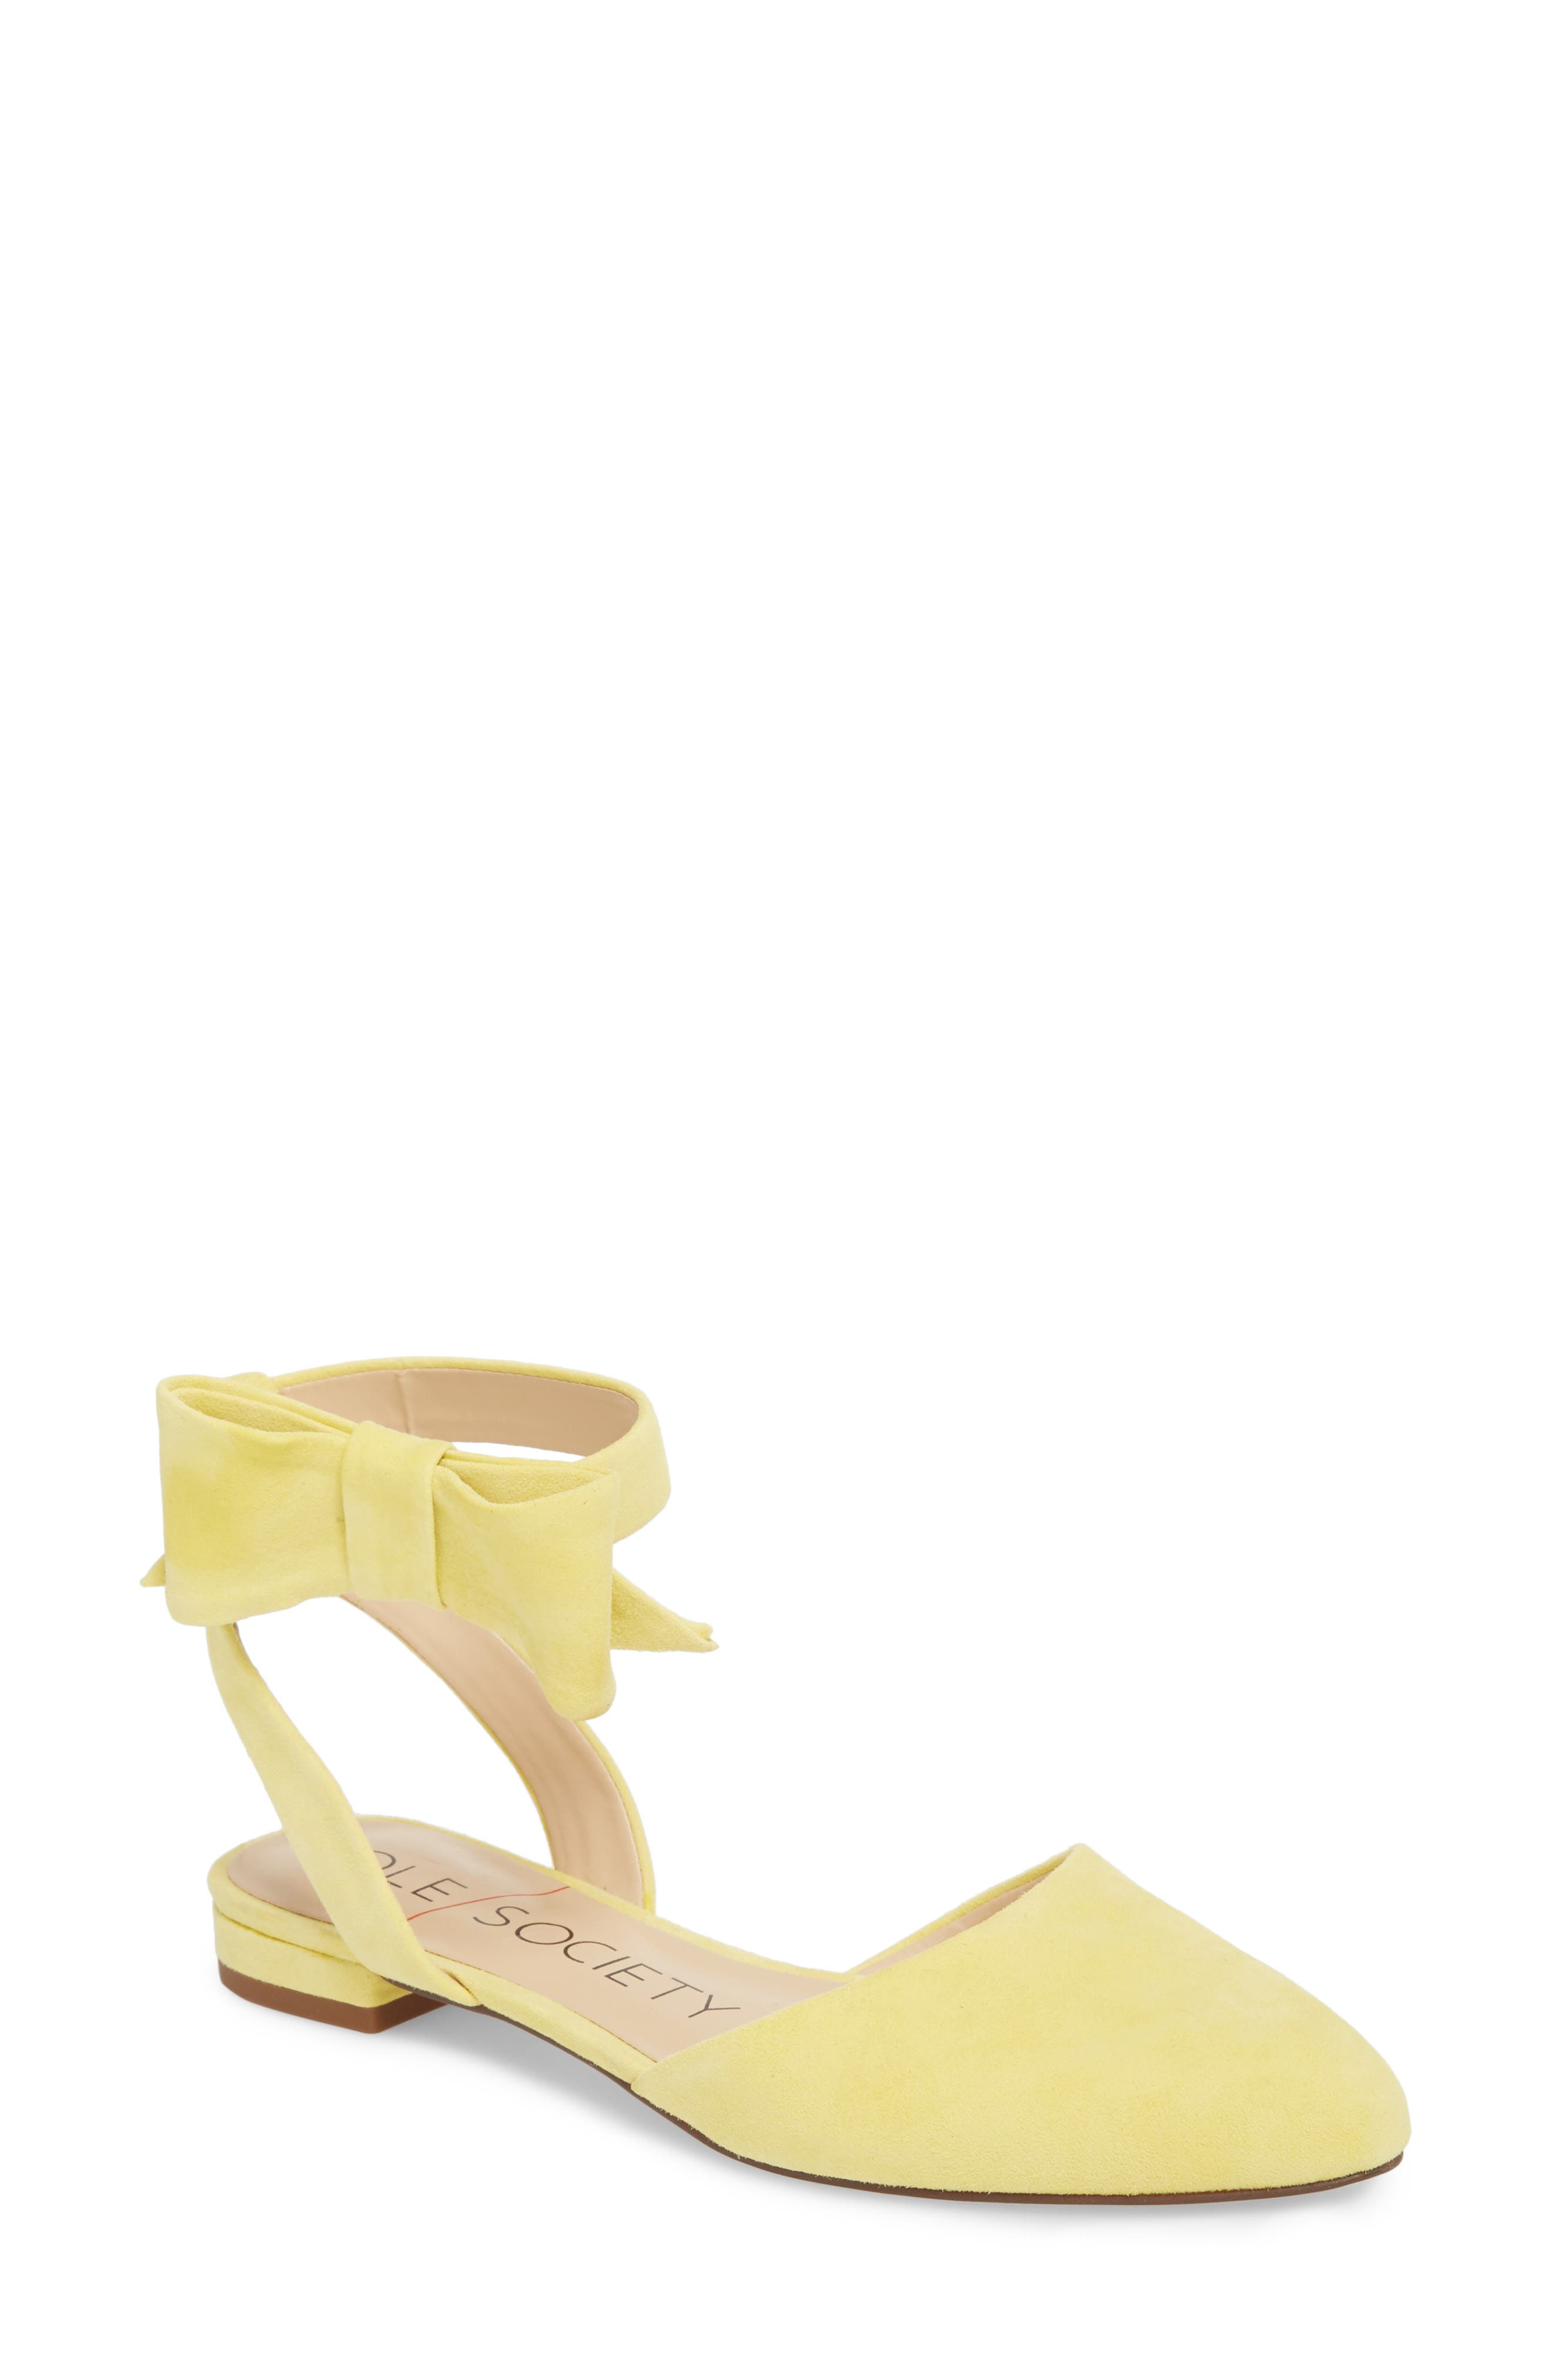 Pollie Flat,                             Main thumbnail 1, color,                             Pale Yellow Fabric